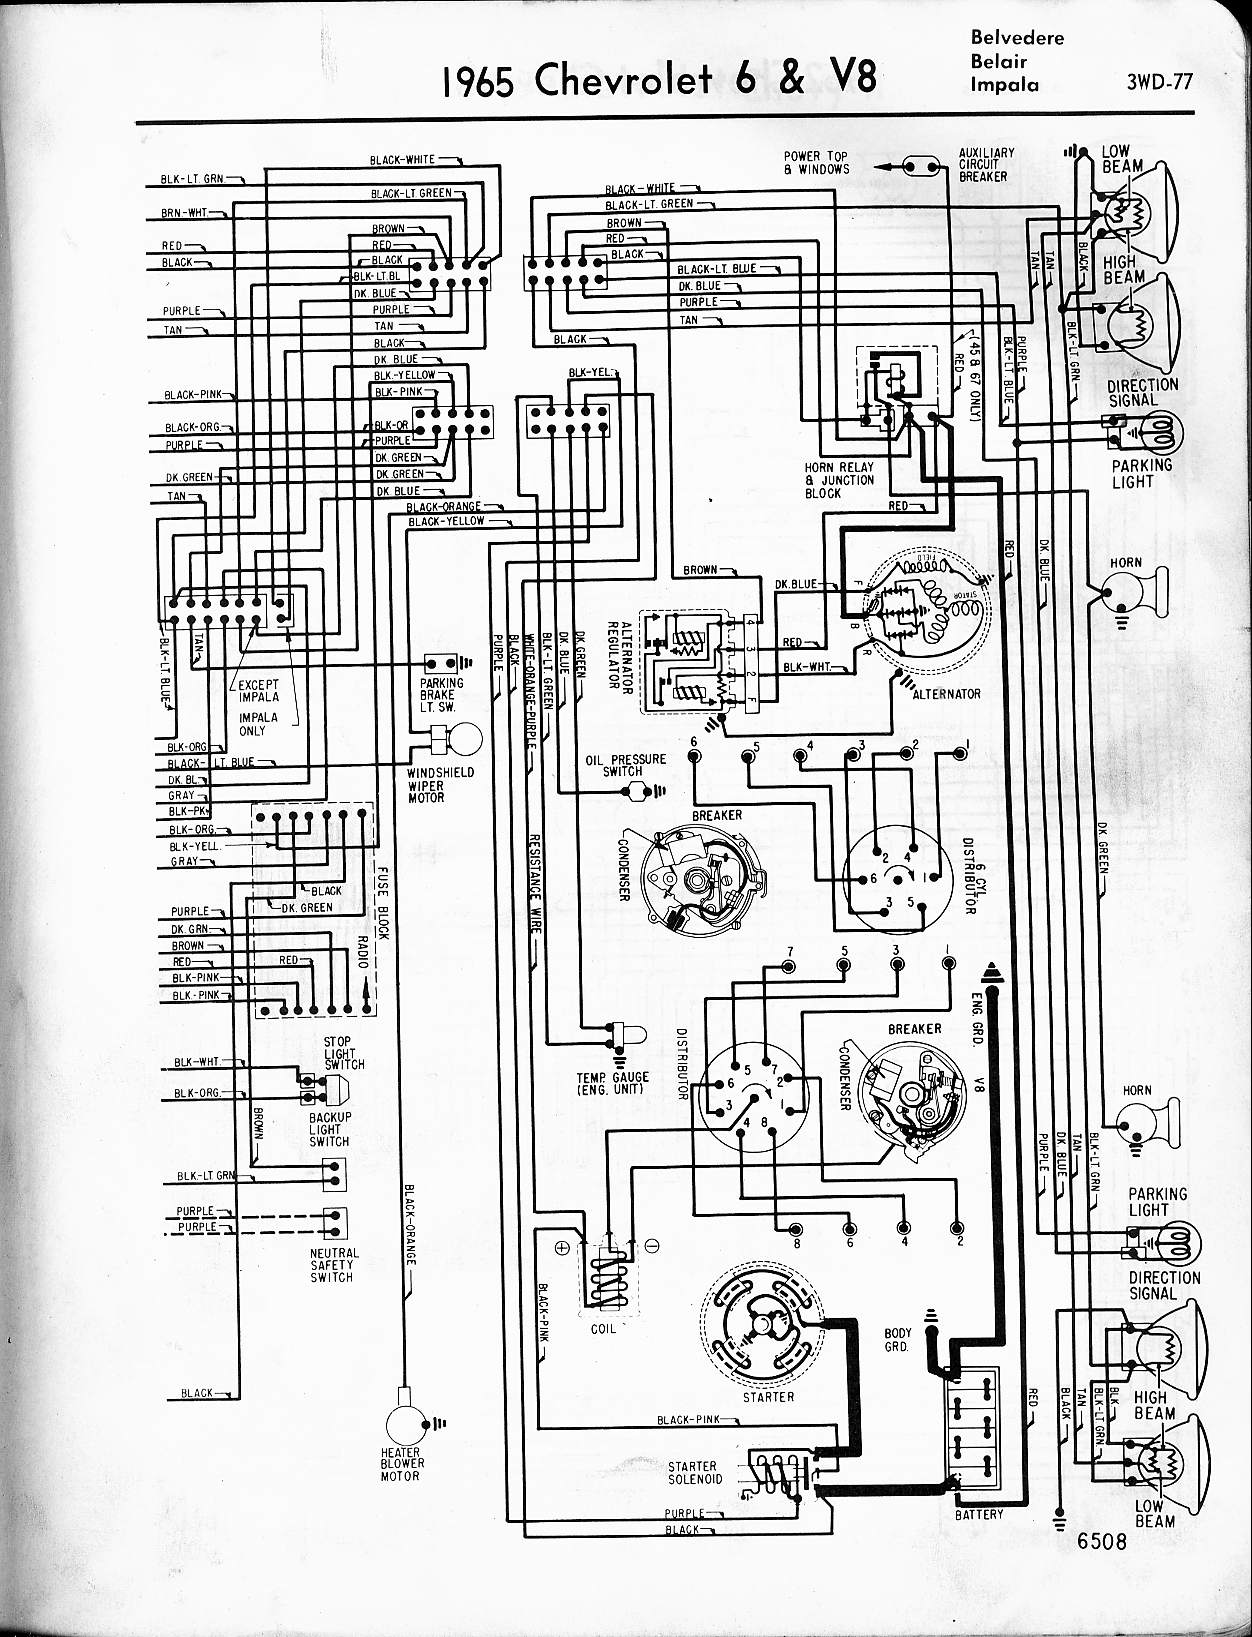 MWireChev65_3WD 077 57 65 chevy wiring diagrams 1965 chevy impala fuse box diagram at readyjetset.co